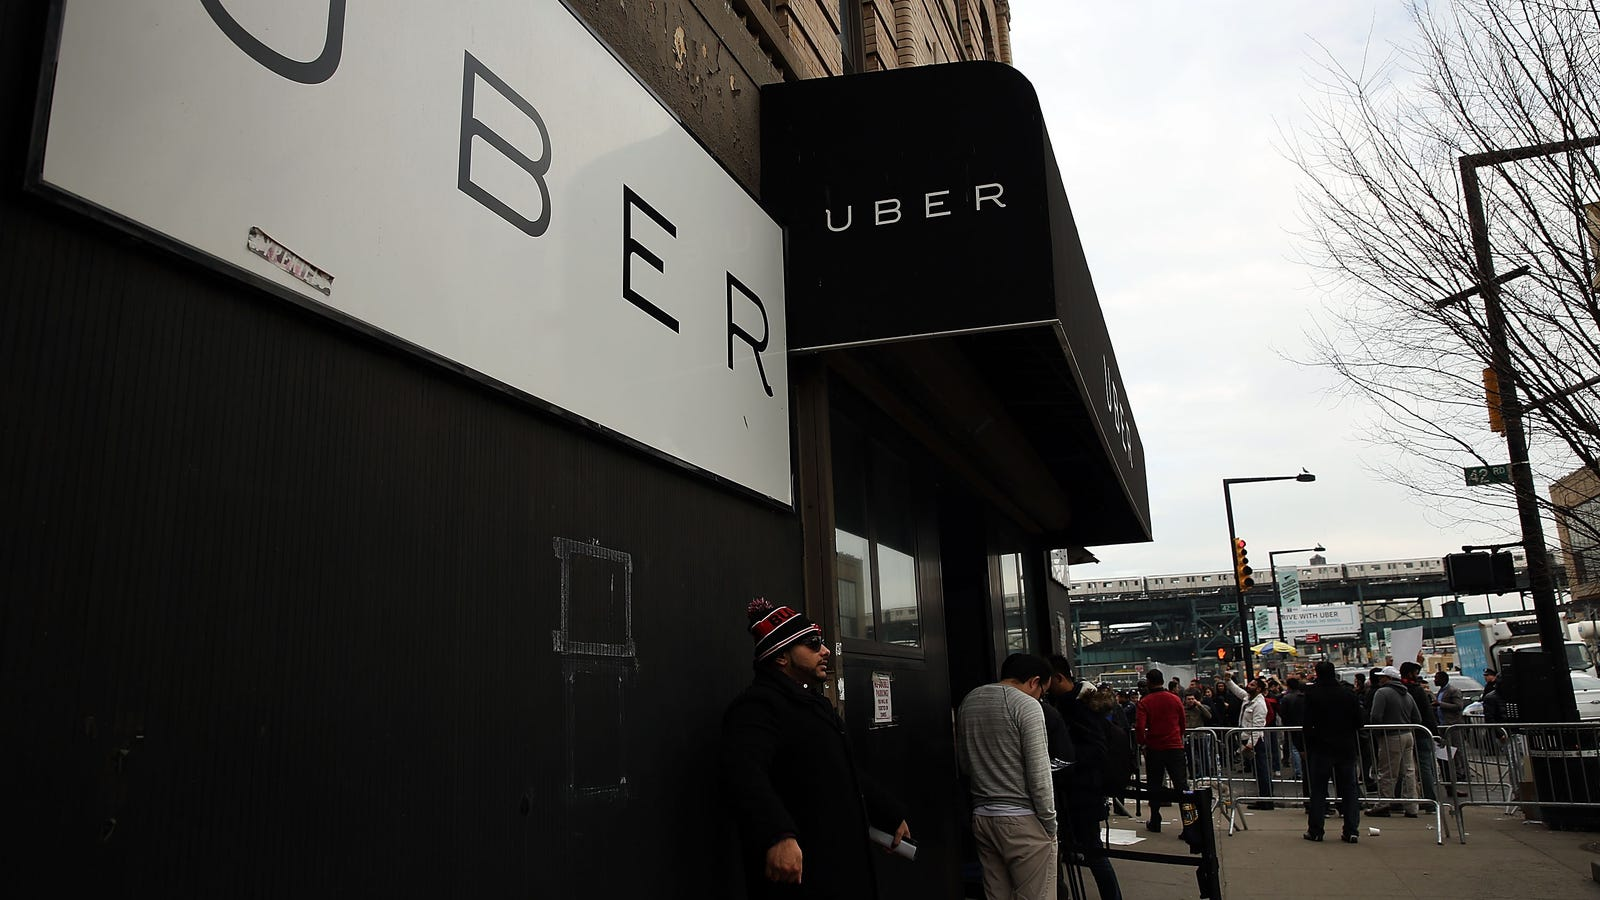 jobs news videos reviews and gossip jalopnik uber s brash workplace culture has been front and center in recent weeks after a former engineer wrote an essay about widesp sexual harassment at the